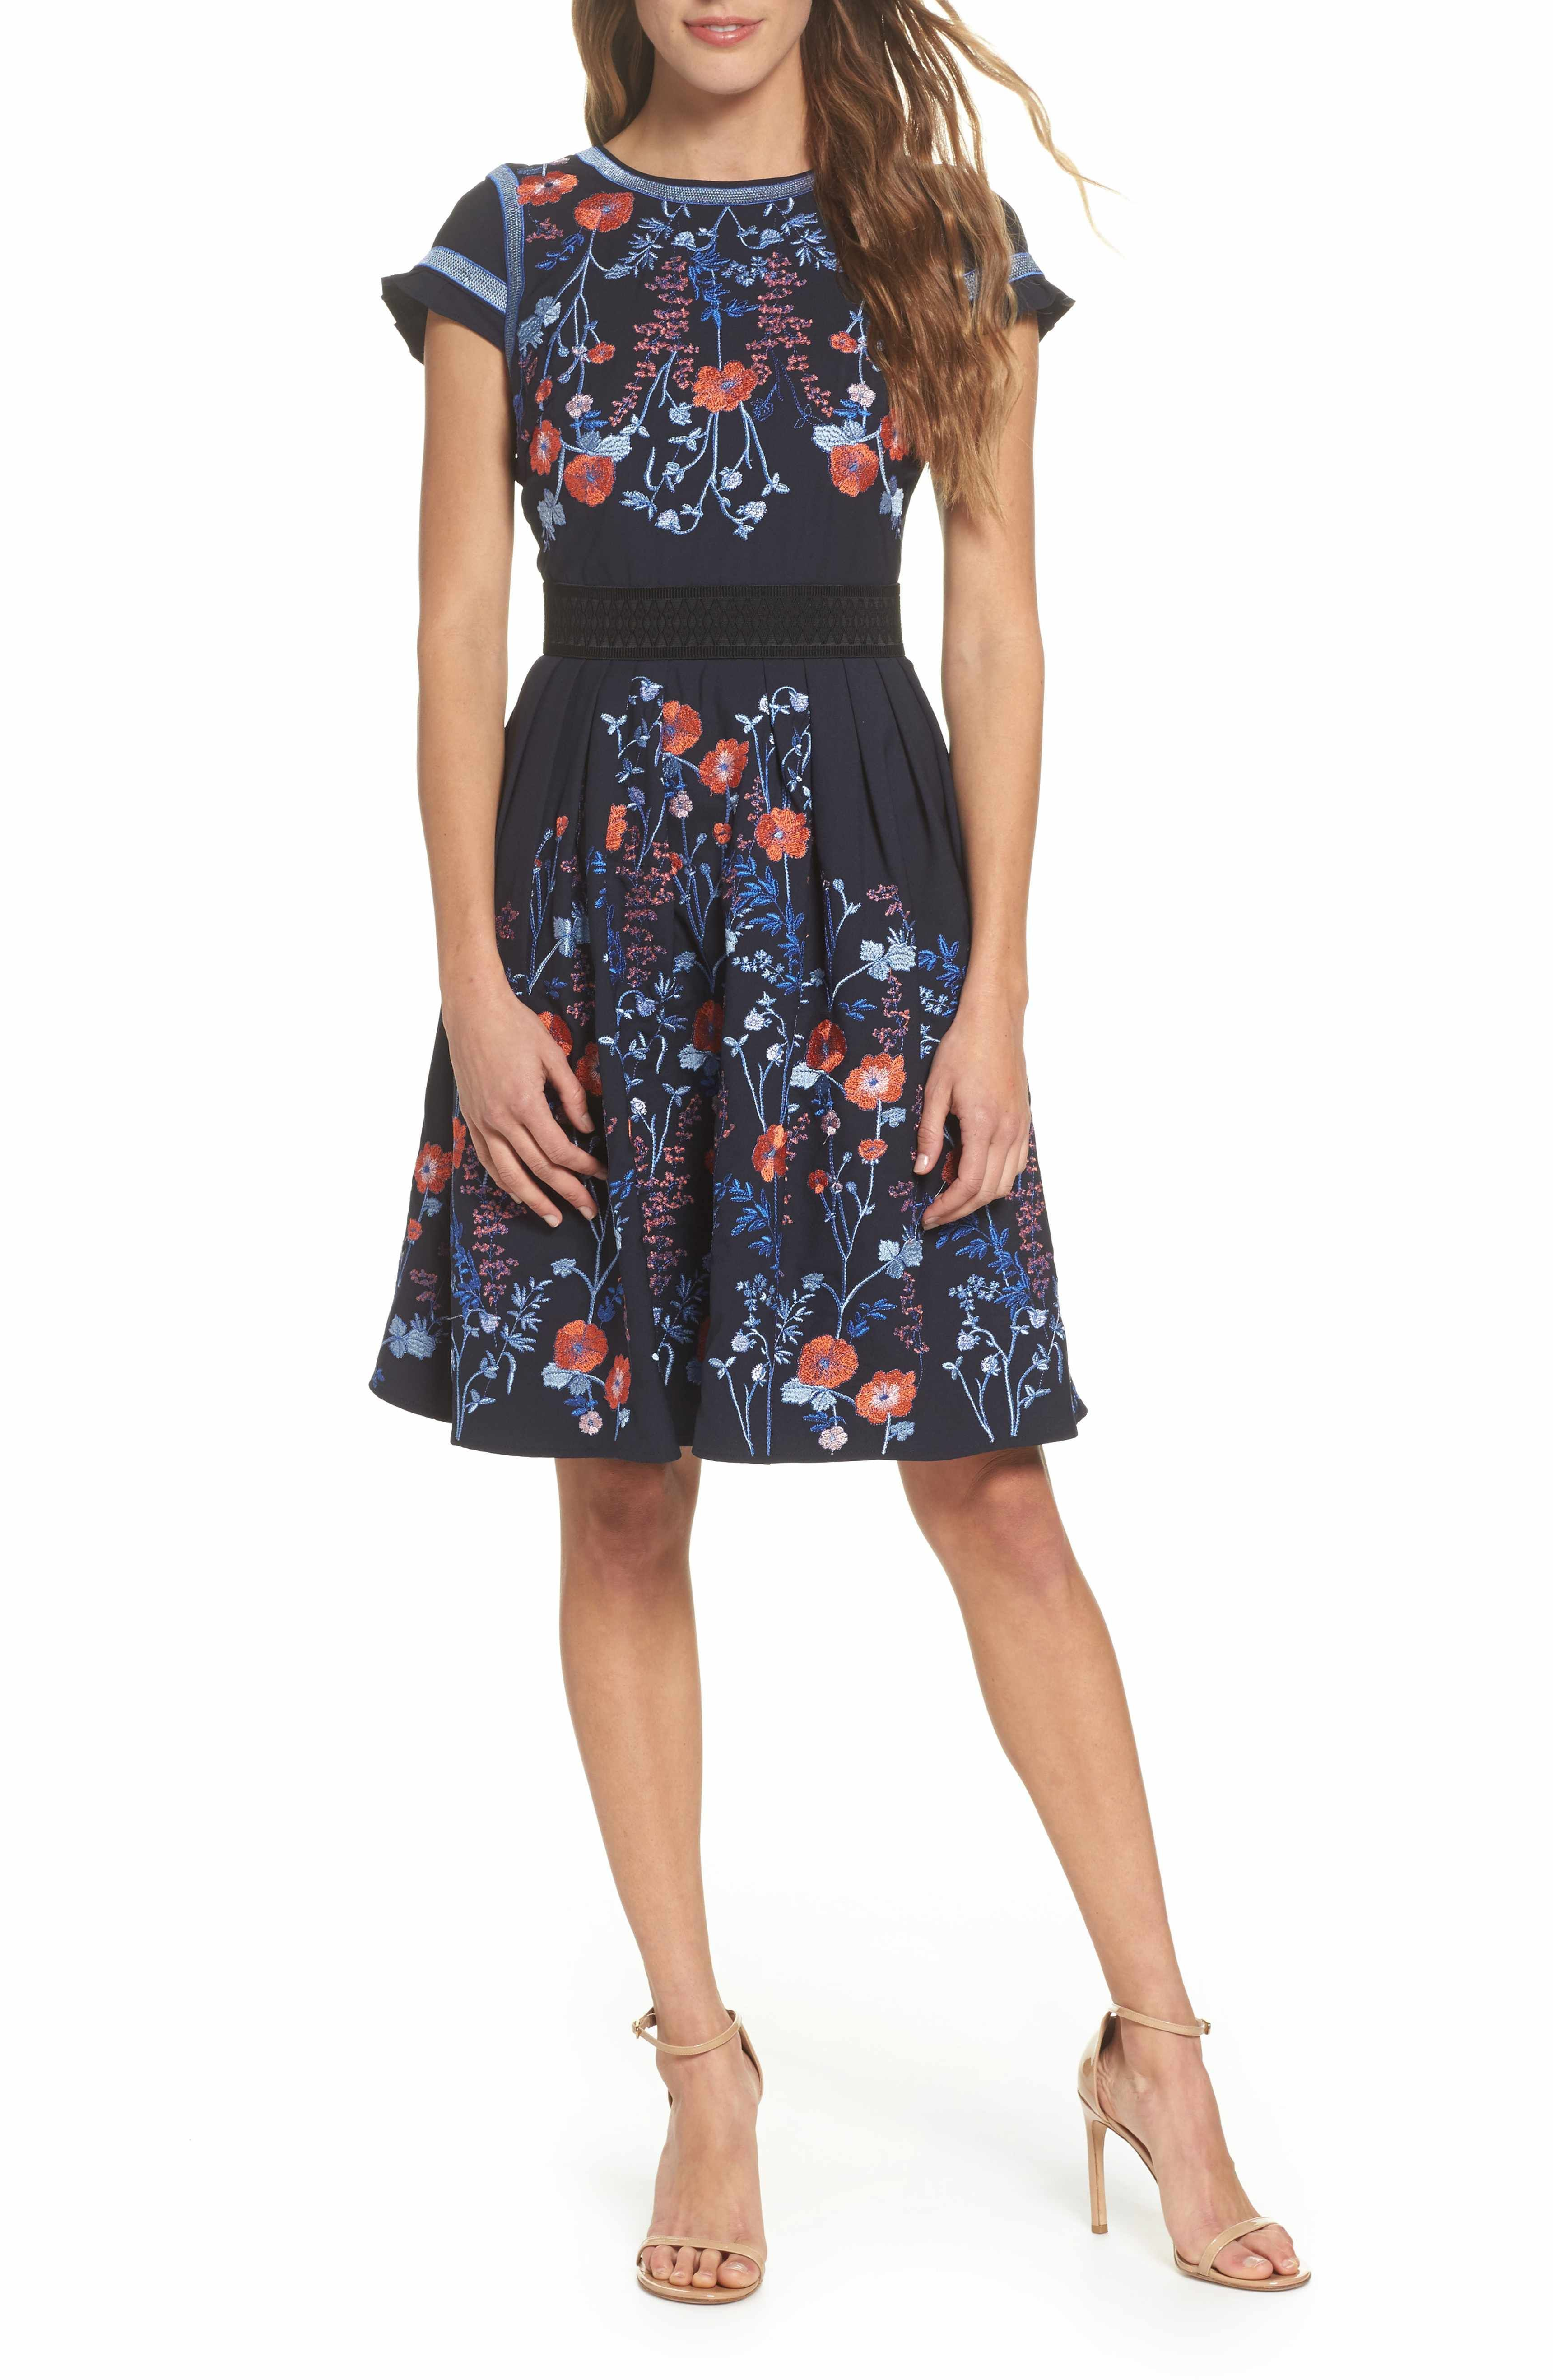 Nordstrom dresses wedding guest  Main Image  Foxiedox Senna Embroidered Fit u Flare Dress Gorgeous